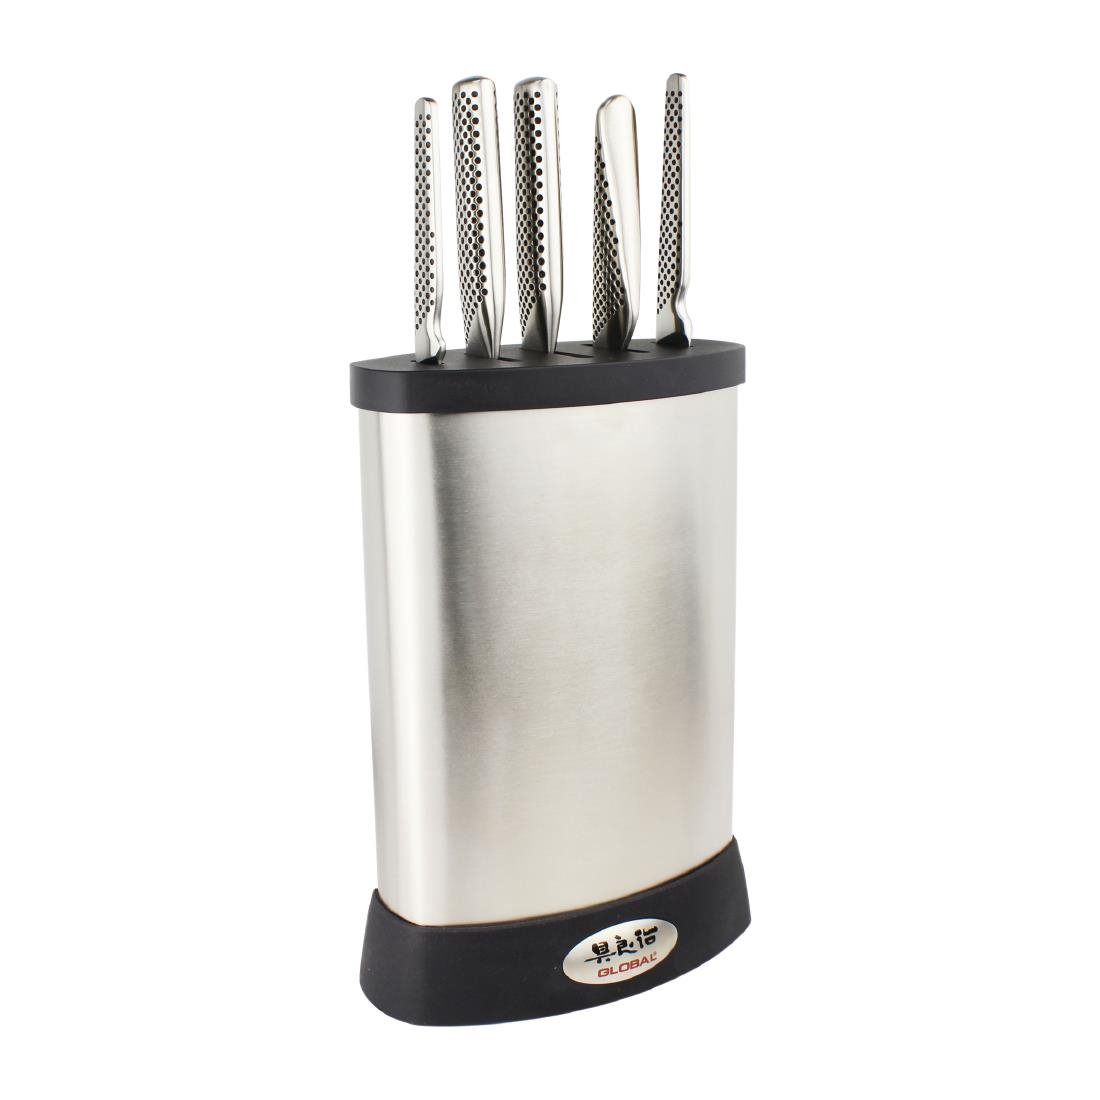 Global 5 Piece Knife Set with Block